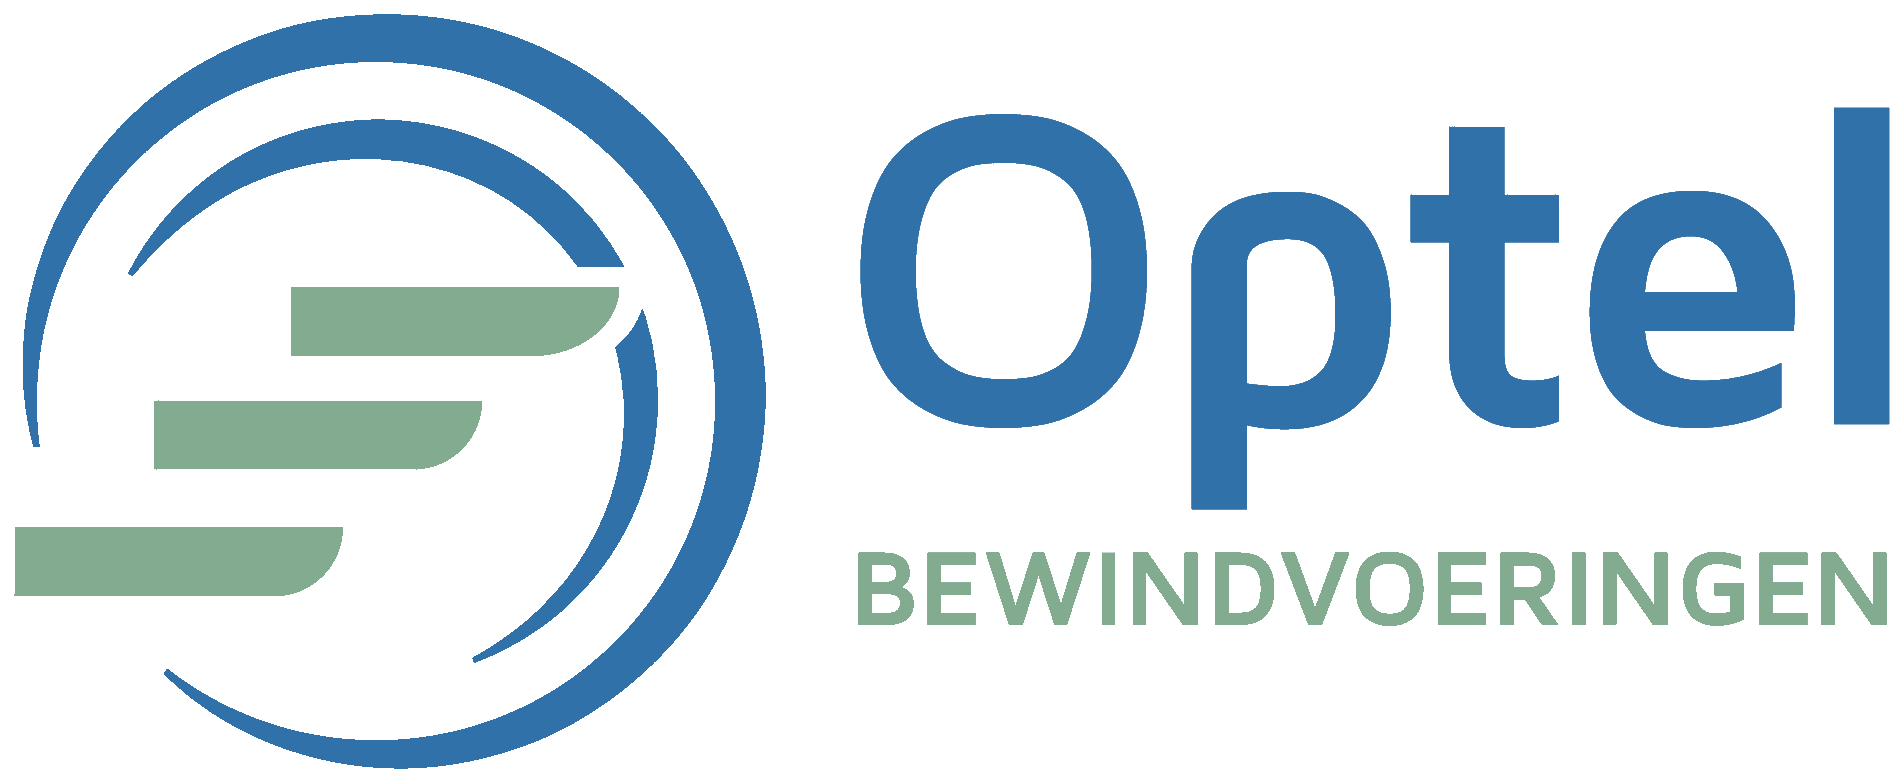 Optelbewind